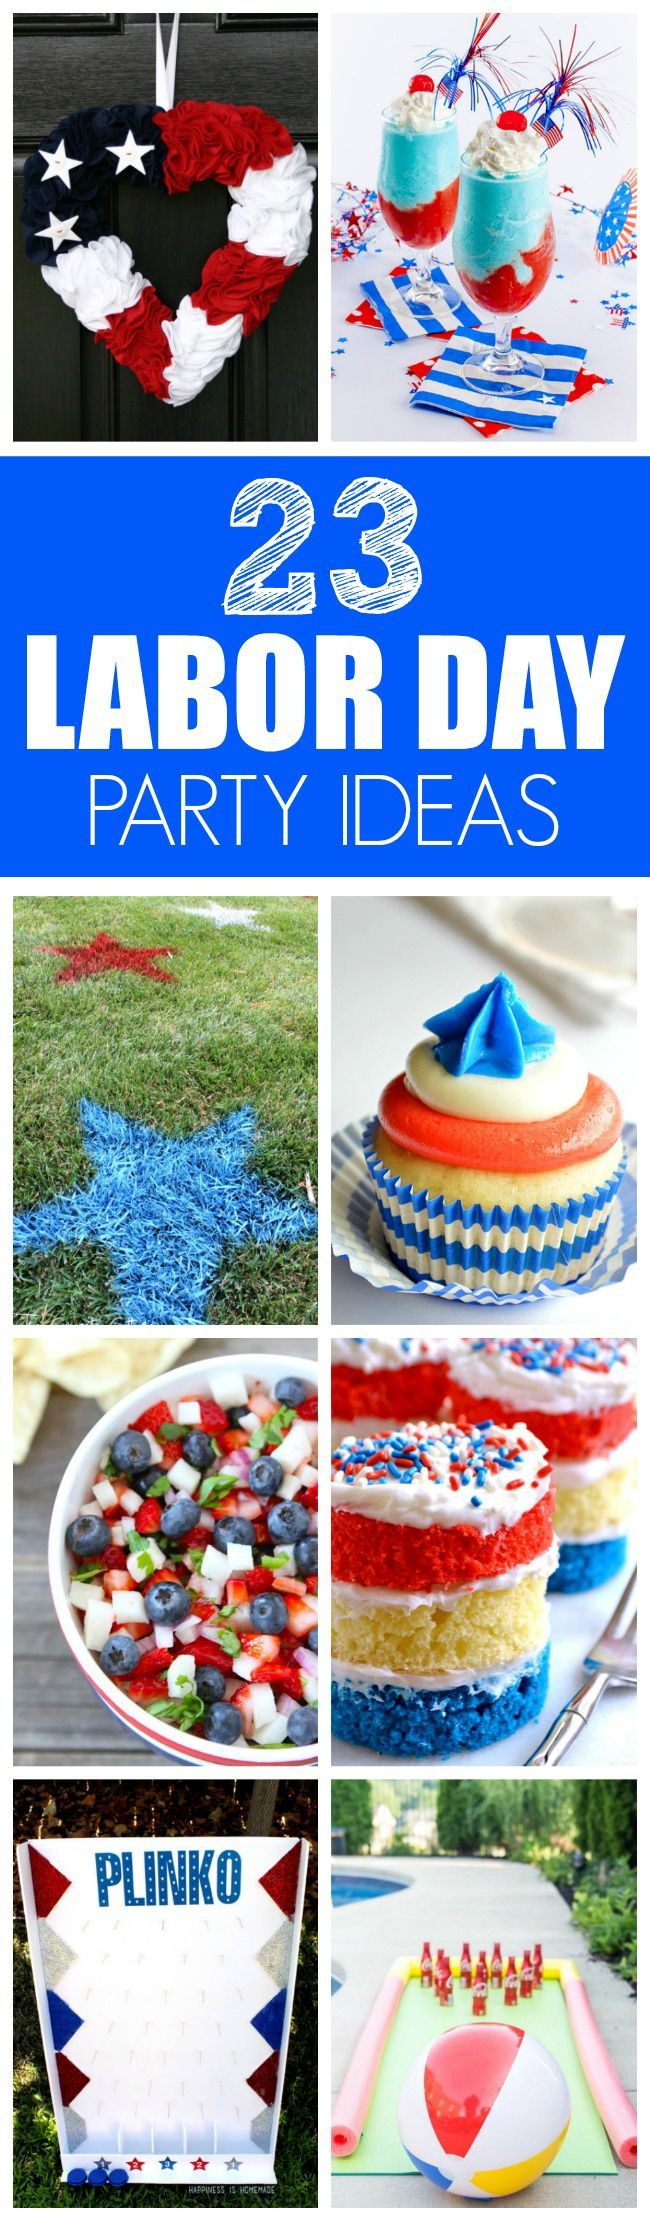 23 perfect labor day party ideas | pinterest | labour and summer parties